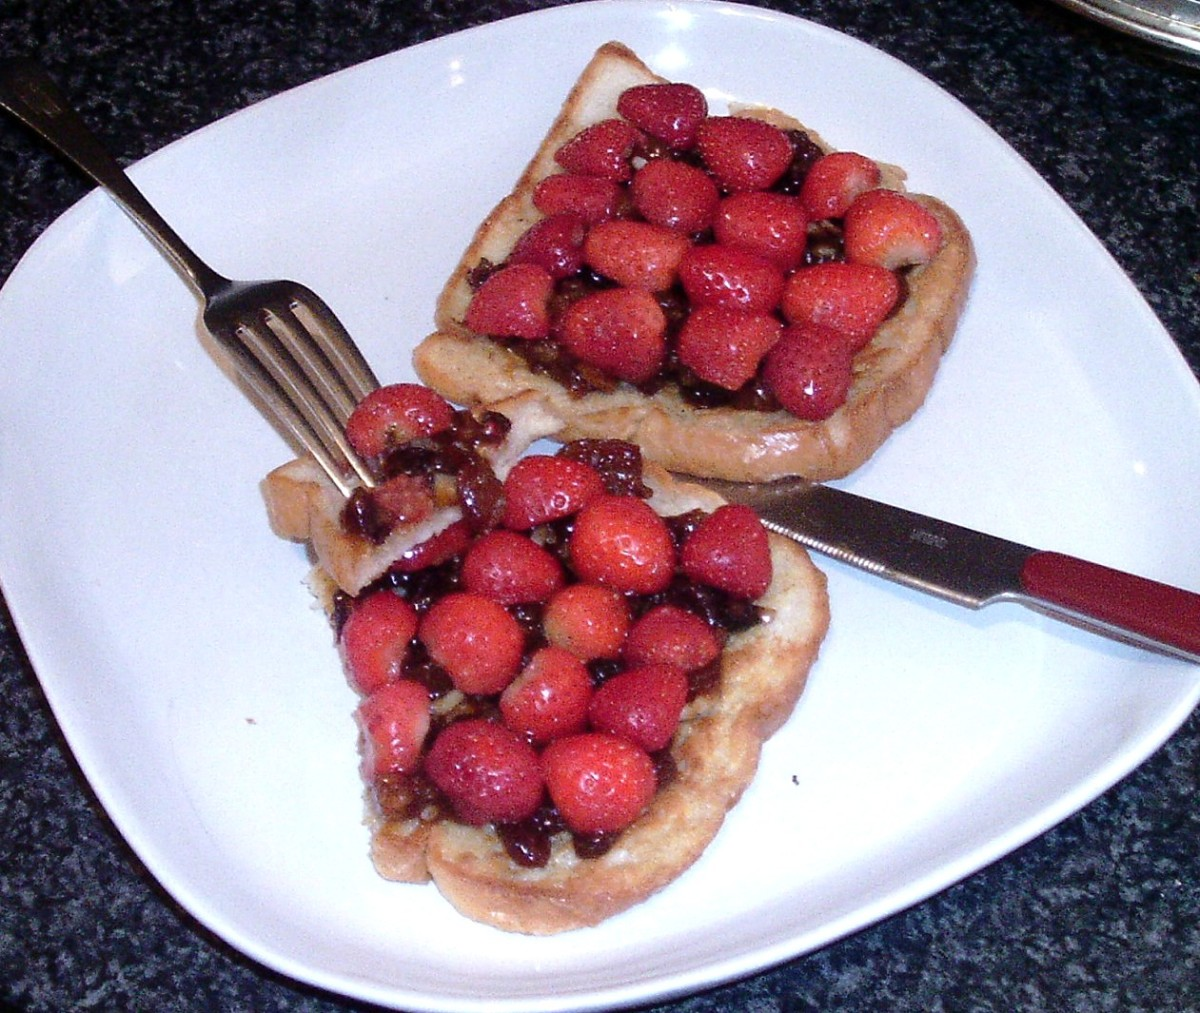 Mincemeat Spread on Cinnamon- and Cumin-Spiced French Toast With Halved Fresh Strawberries Arranged on Top